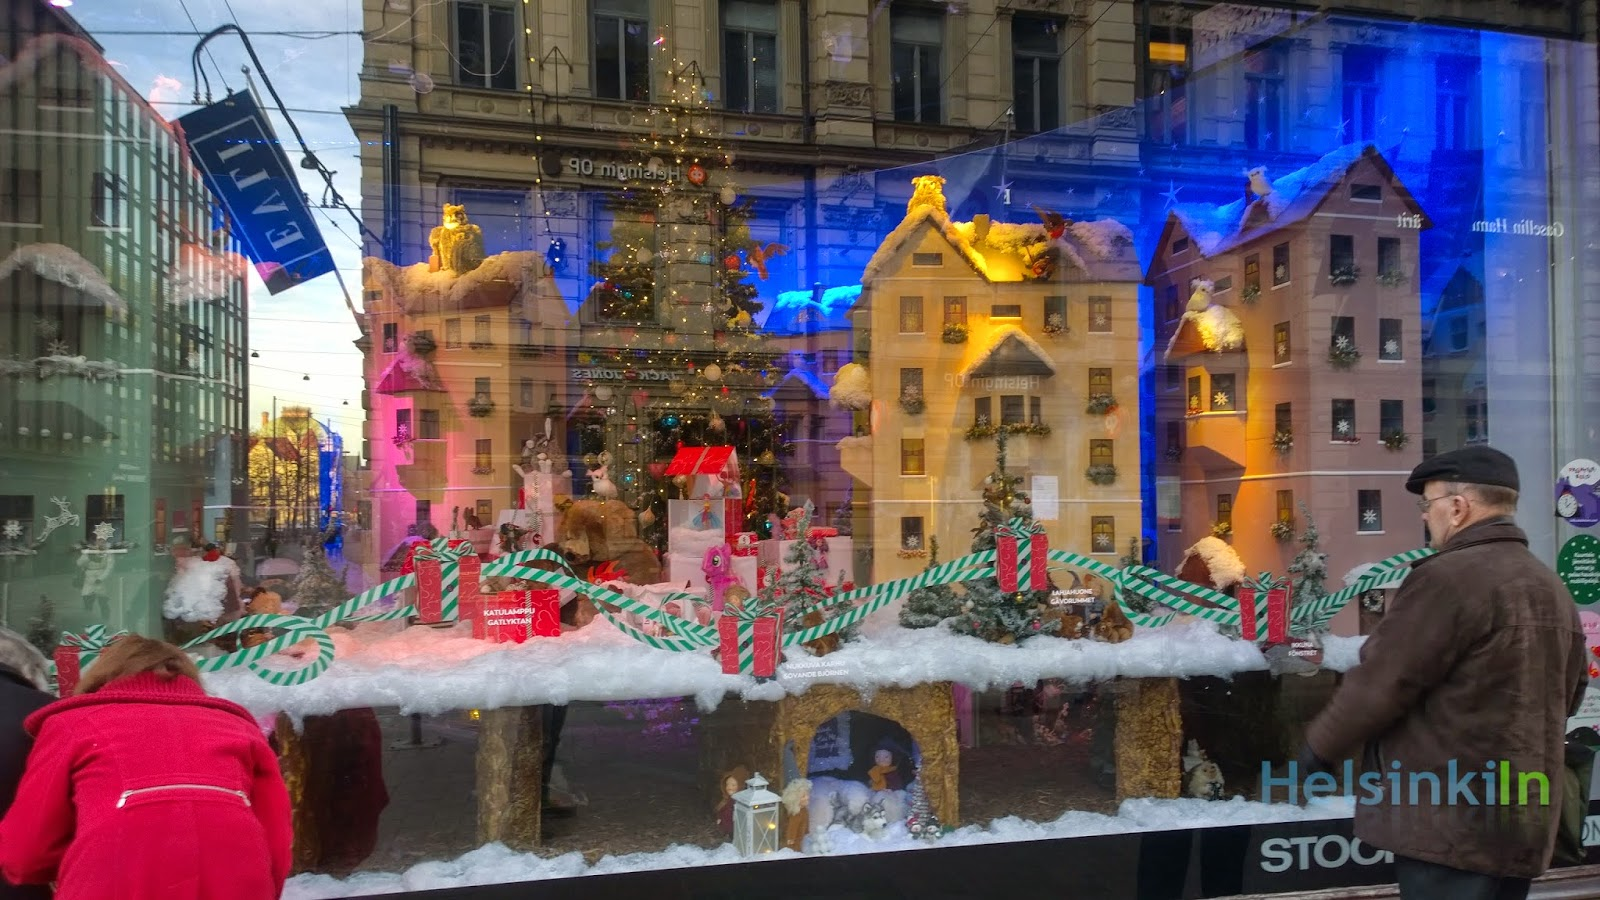 Stockmann's Christmas windows